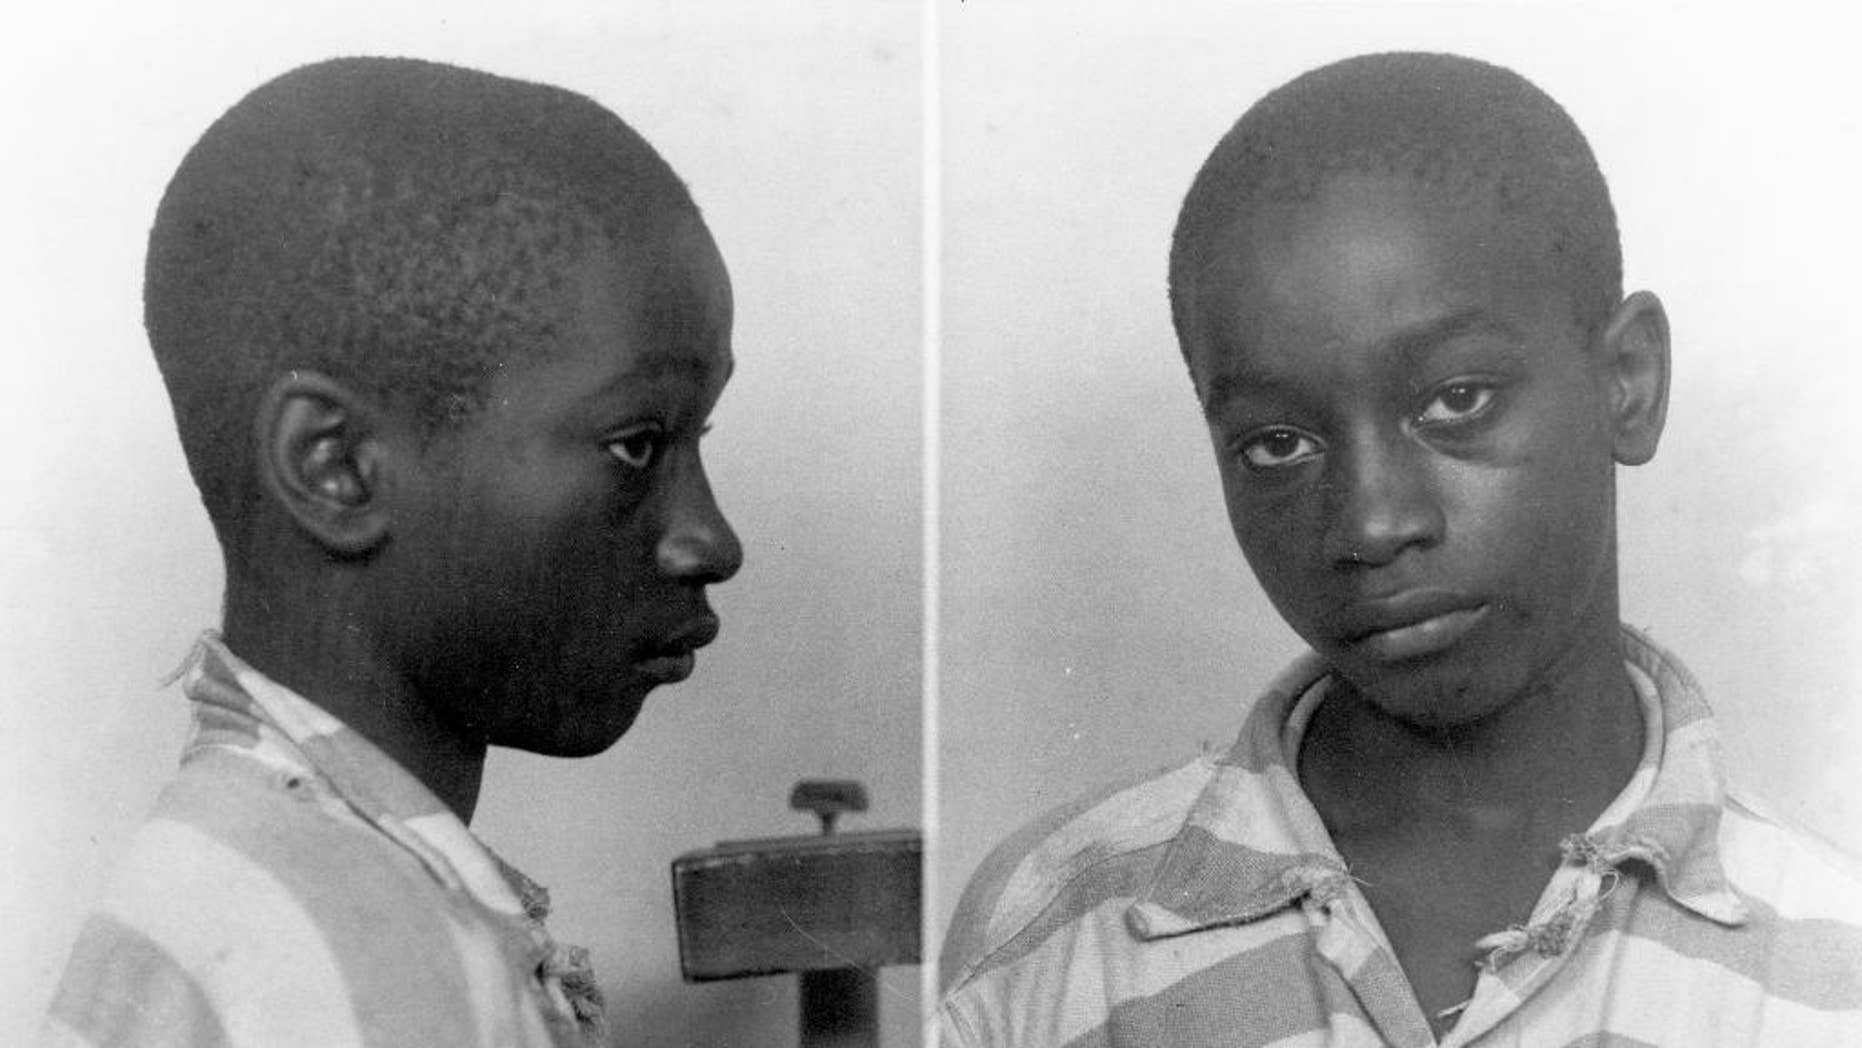 FILE - This undated file photo provided by the South Carolina Department of Archives and History shows George Stinney Jr., the youngest person ever executed in South Carolina, in 1944. A South Carolina state judge, in a Dec. 7, 2014 ruling, vacated Stinney's conviction in the deaths of two young girls, clearing his name. (AP Photo/South Carolina Department of Archives and History, File)